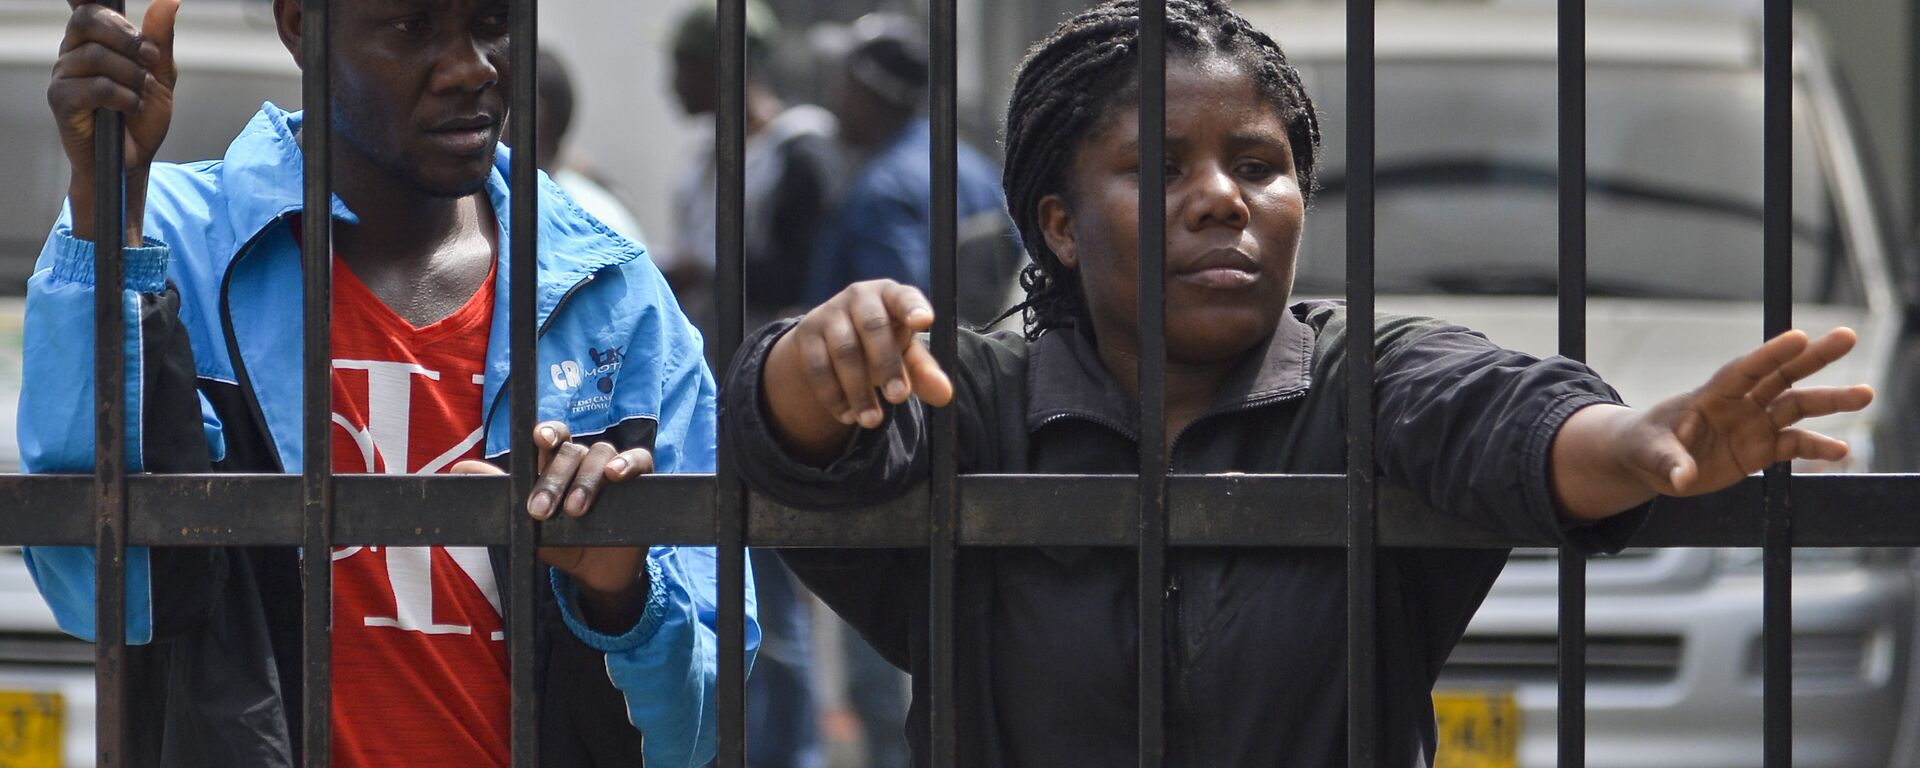 Haitian migrants wait at the immigrations office in Cali, Colombia on August 10, 2016. A group of 137 Haitian migrants -comprised of 97 men, 30 women and ten children- coming from Brazil and Ecuador, voluntarily went to the immigration office in Cali seeking to resolve their legal situation, avoid deportation, and so, continue their way to Panama and the United States. - Sputnik Mundo, 1920, 23.05.2021